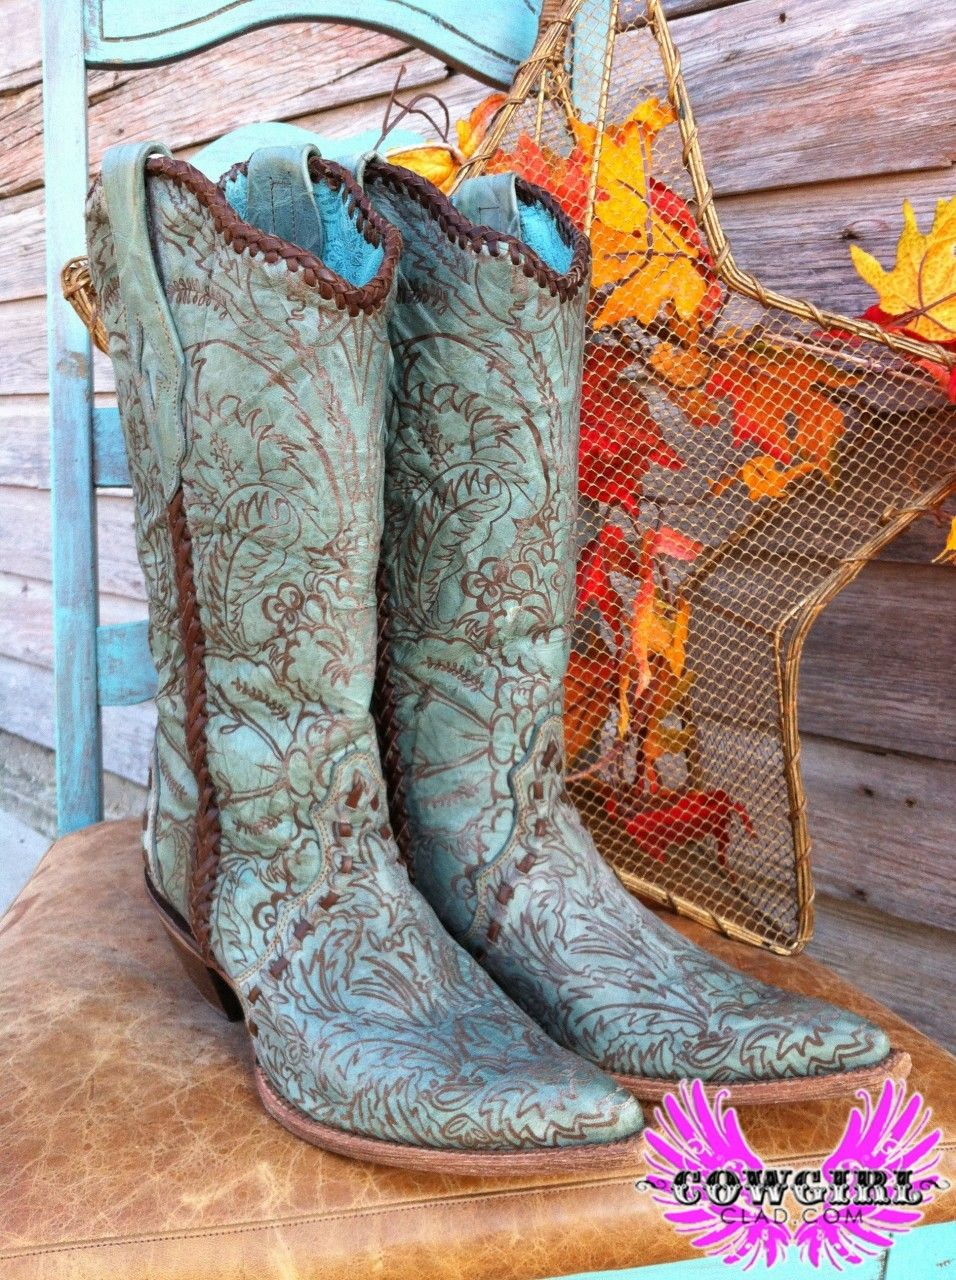 ed6f030862d Pin by Doreena Silva on Boots I Like/want!!! | Cowgirl boots, Shoe ...